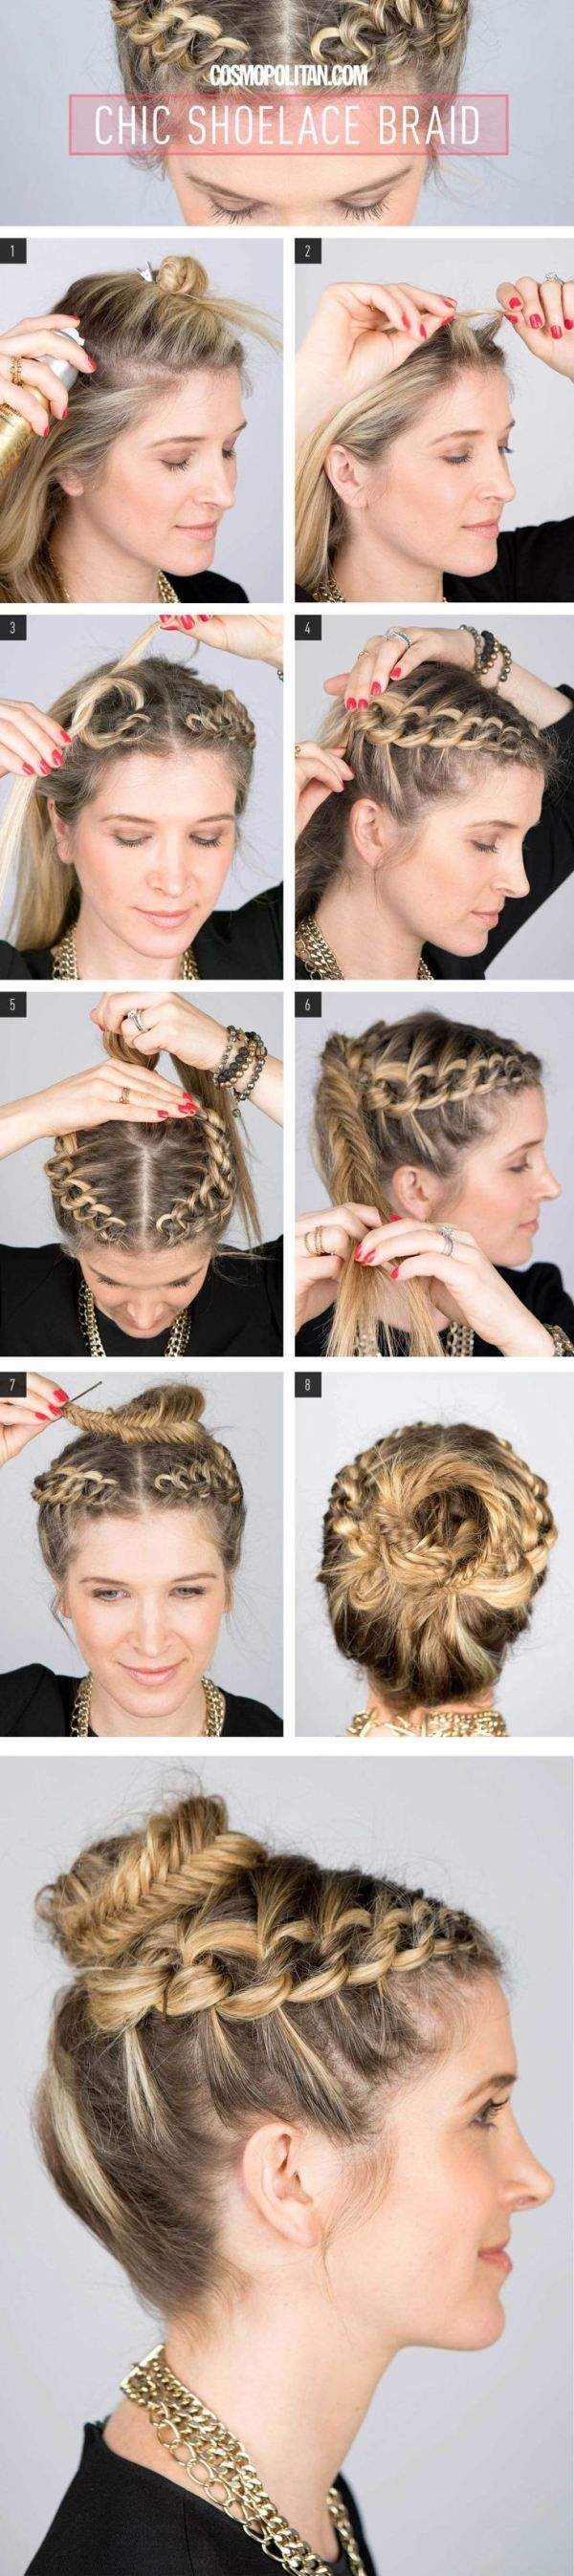 best hair images on pinterest